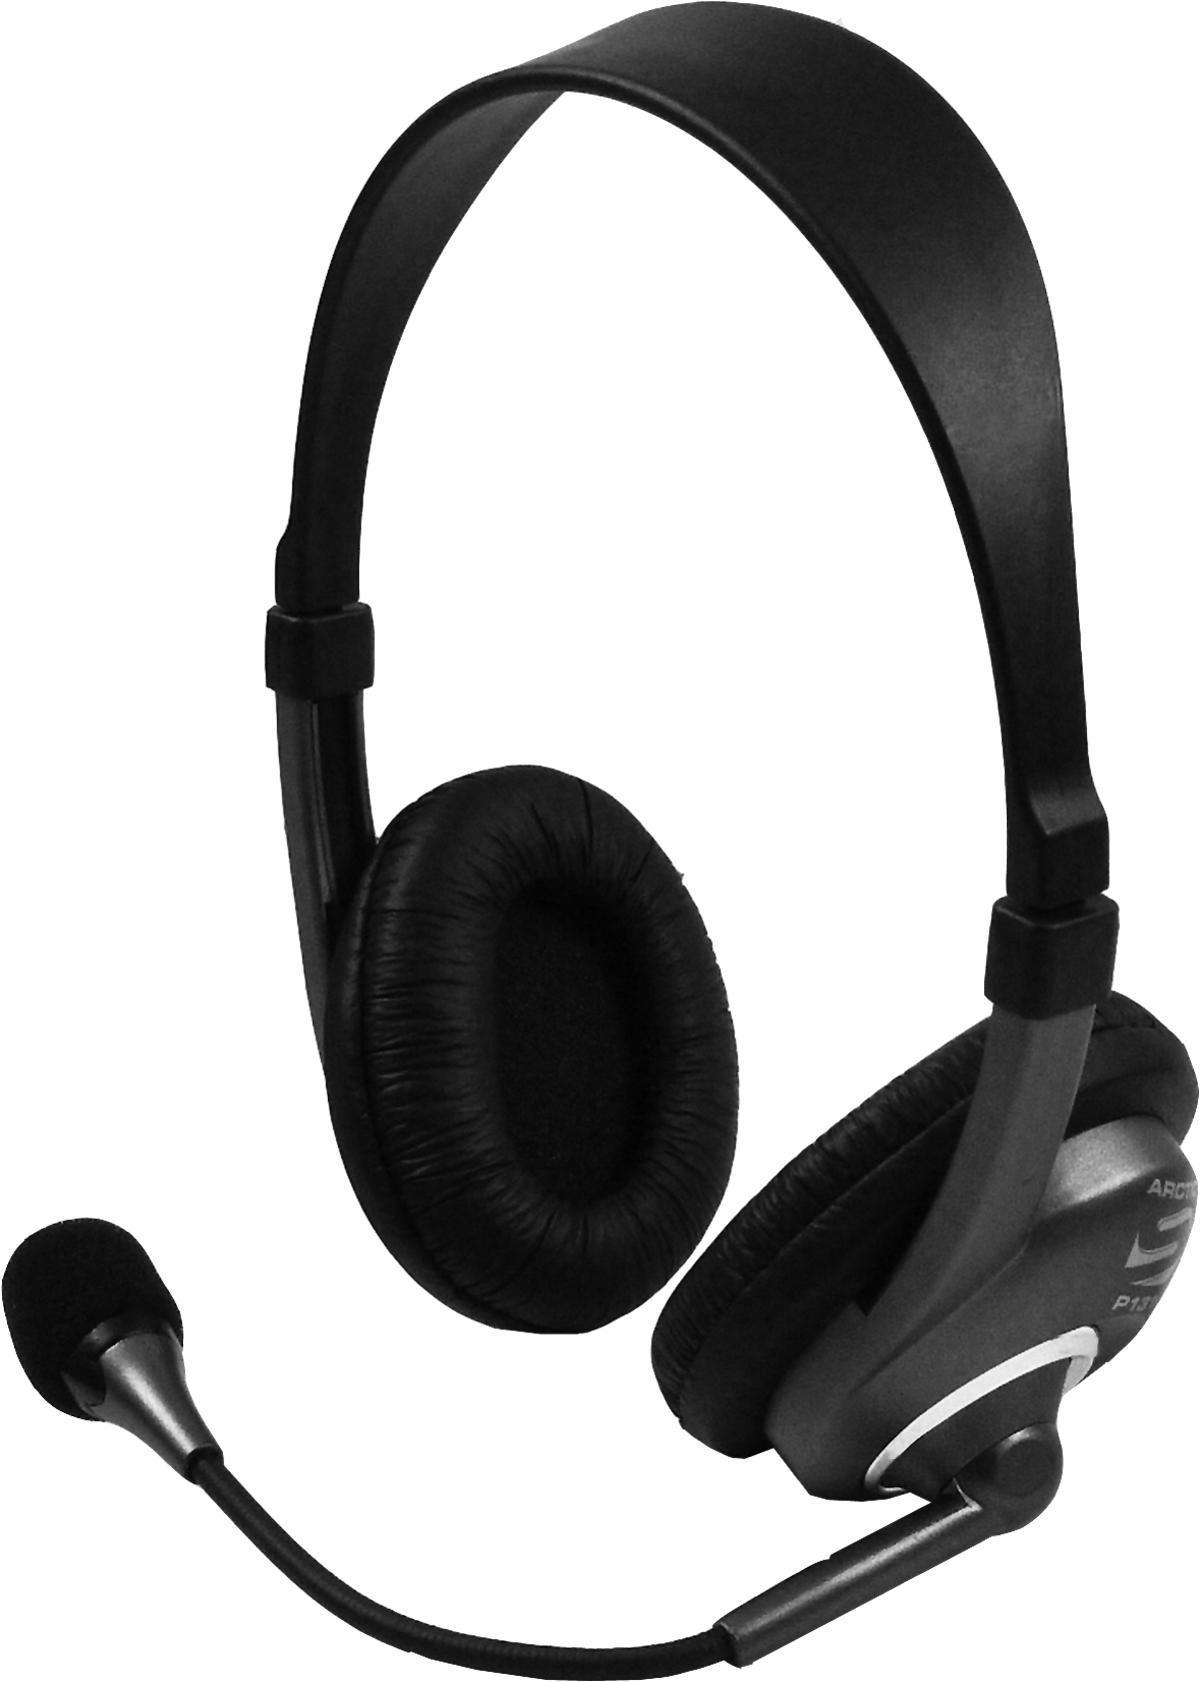 Sound P131 - headphones with mic